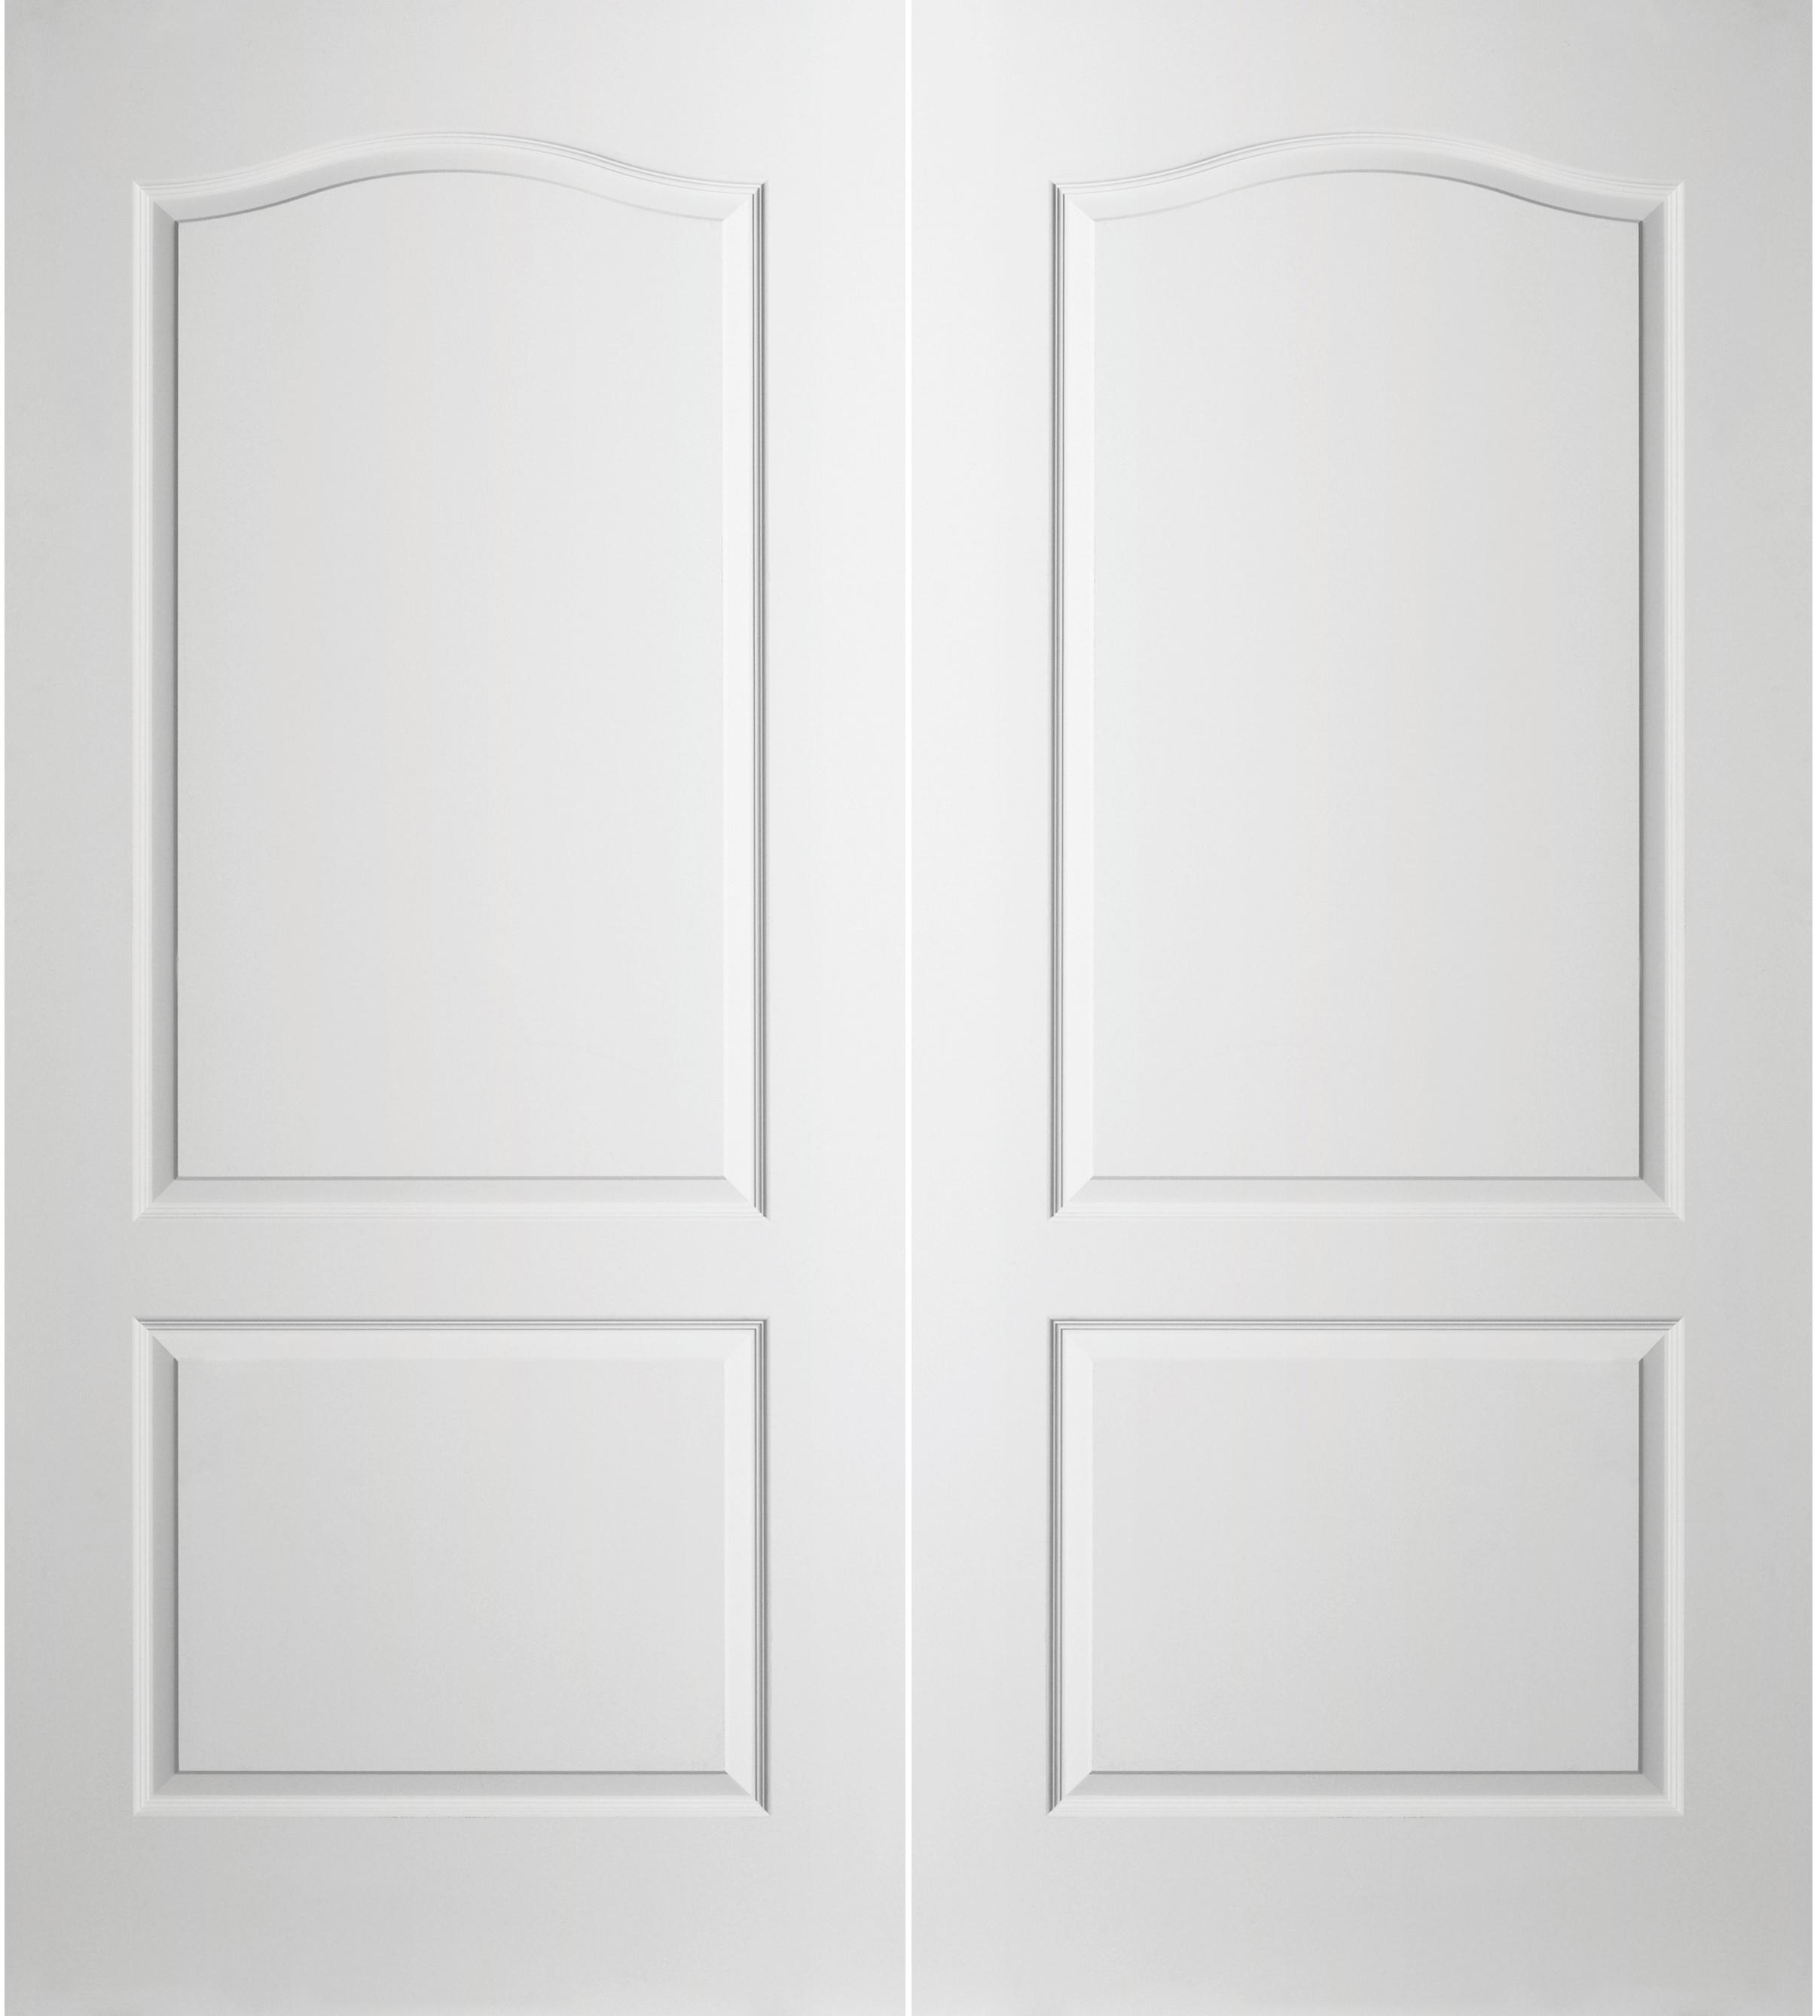 Prehung Interior Double Princeton 2-Panel Arch Top Door w/ Ball Catch  sc 1 st  BMC & Interior \u0026 Closet Doors | Build With BMC